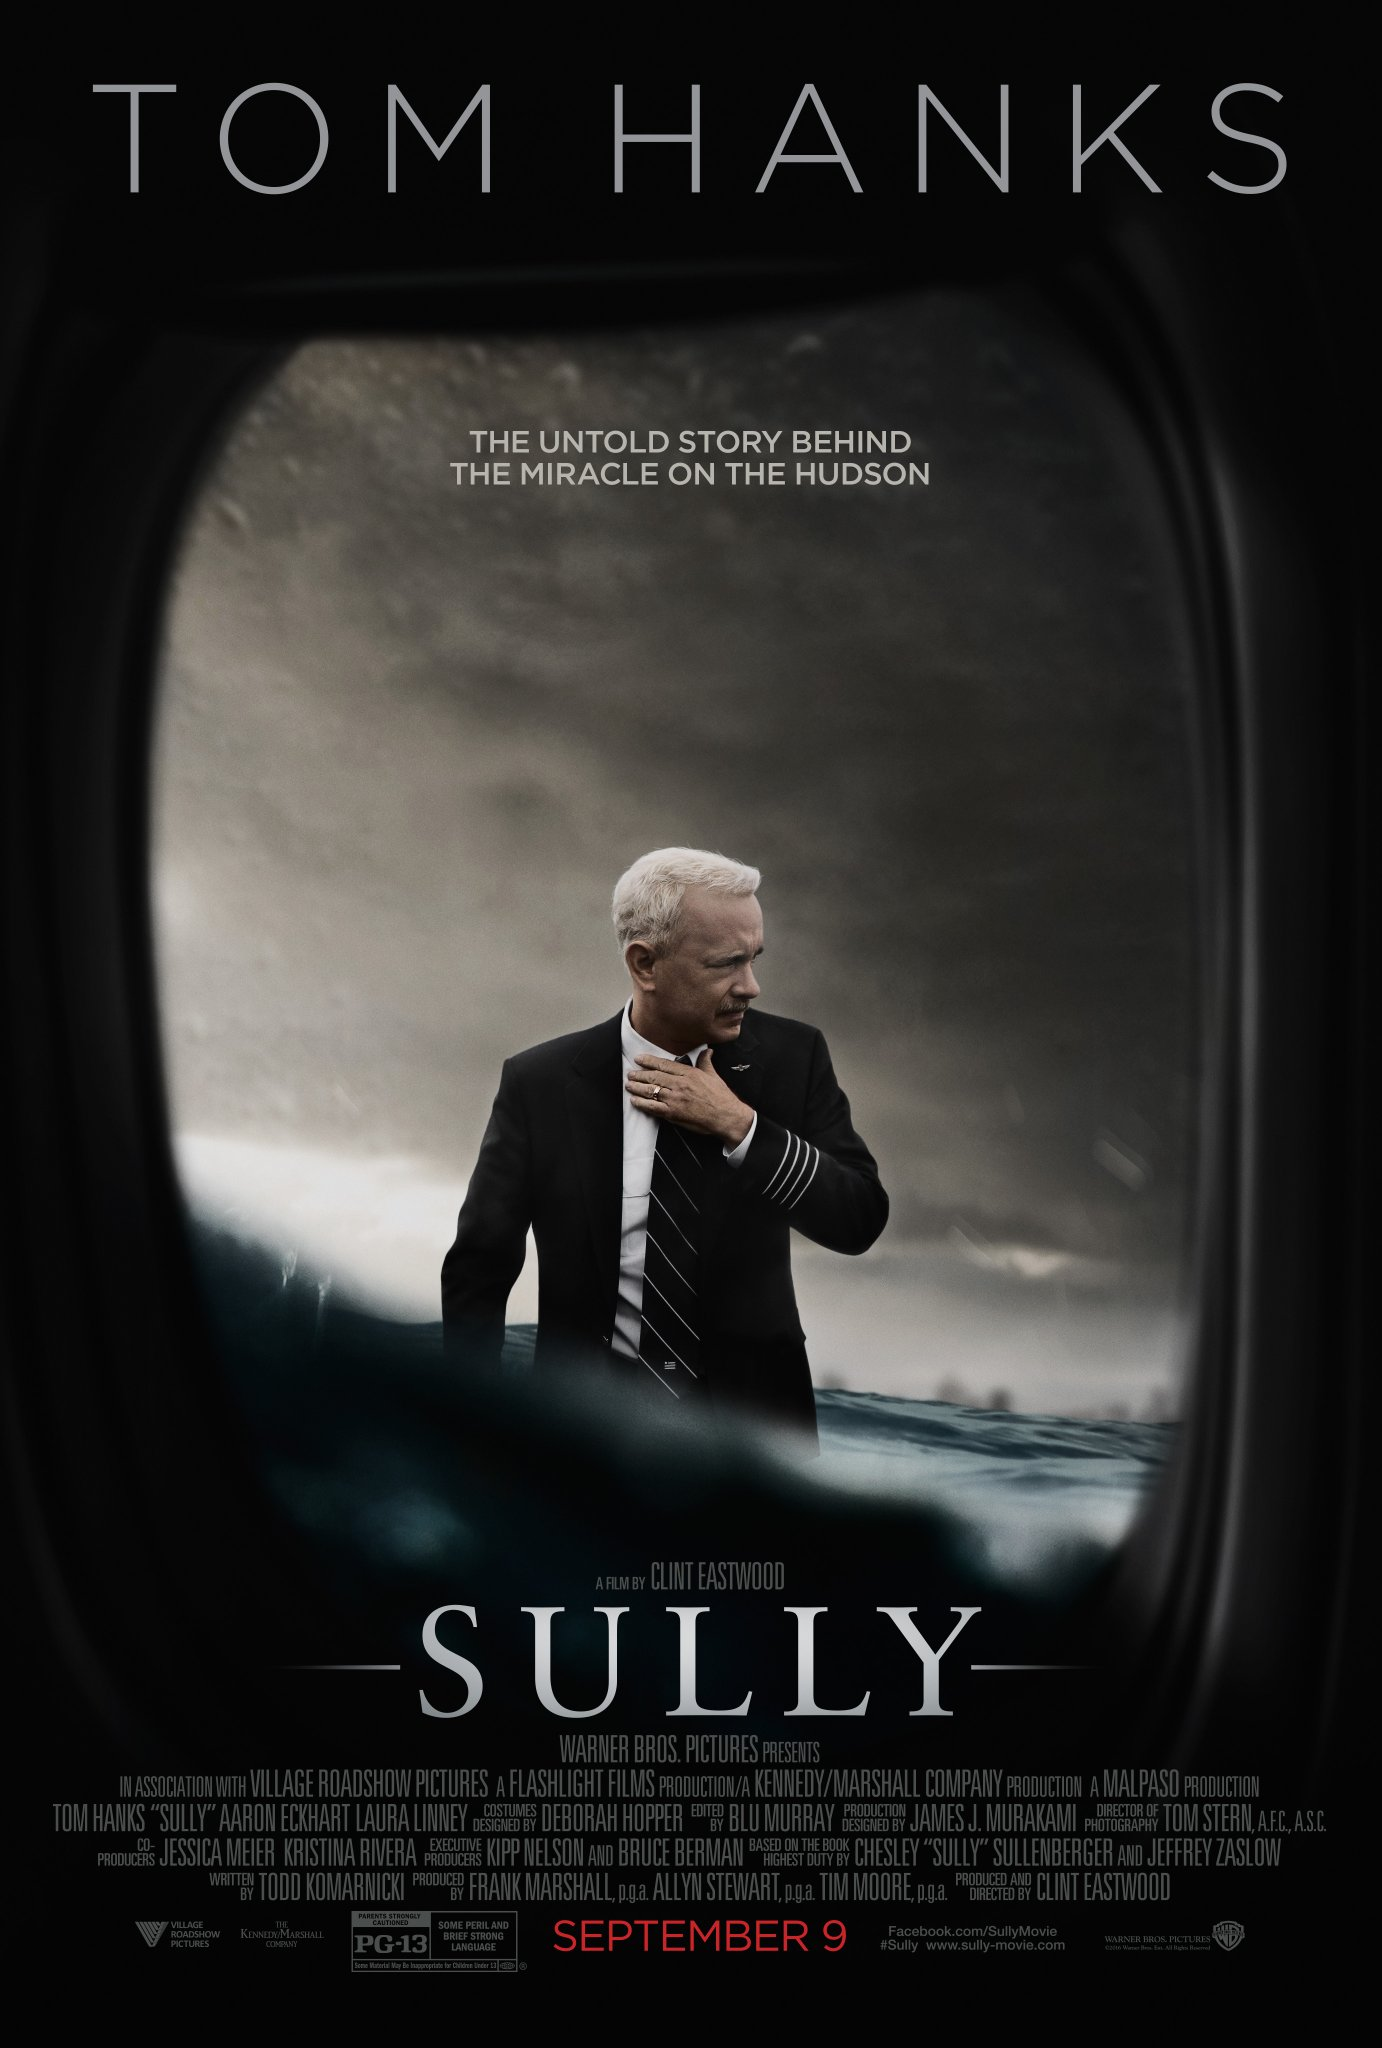 Screenwriter Todd Komarnicki on how Tom Hanks and Director Clint Eastwood boarded 'Sully' to a dramatic landing